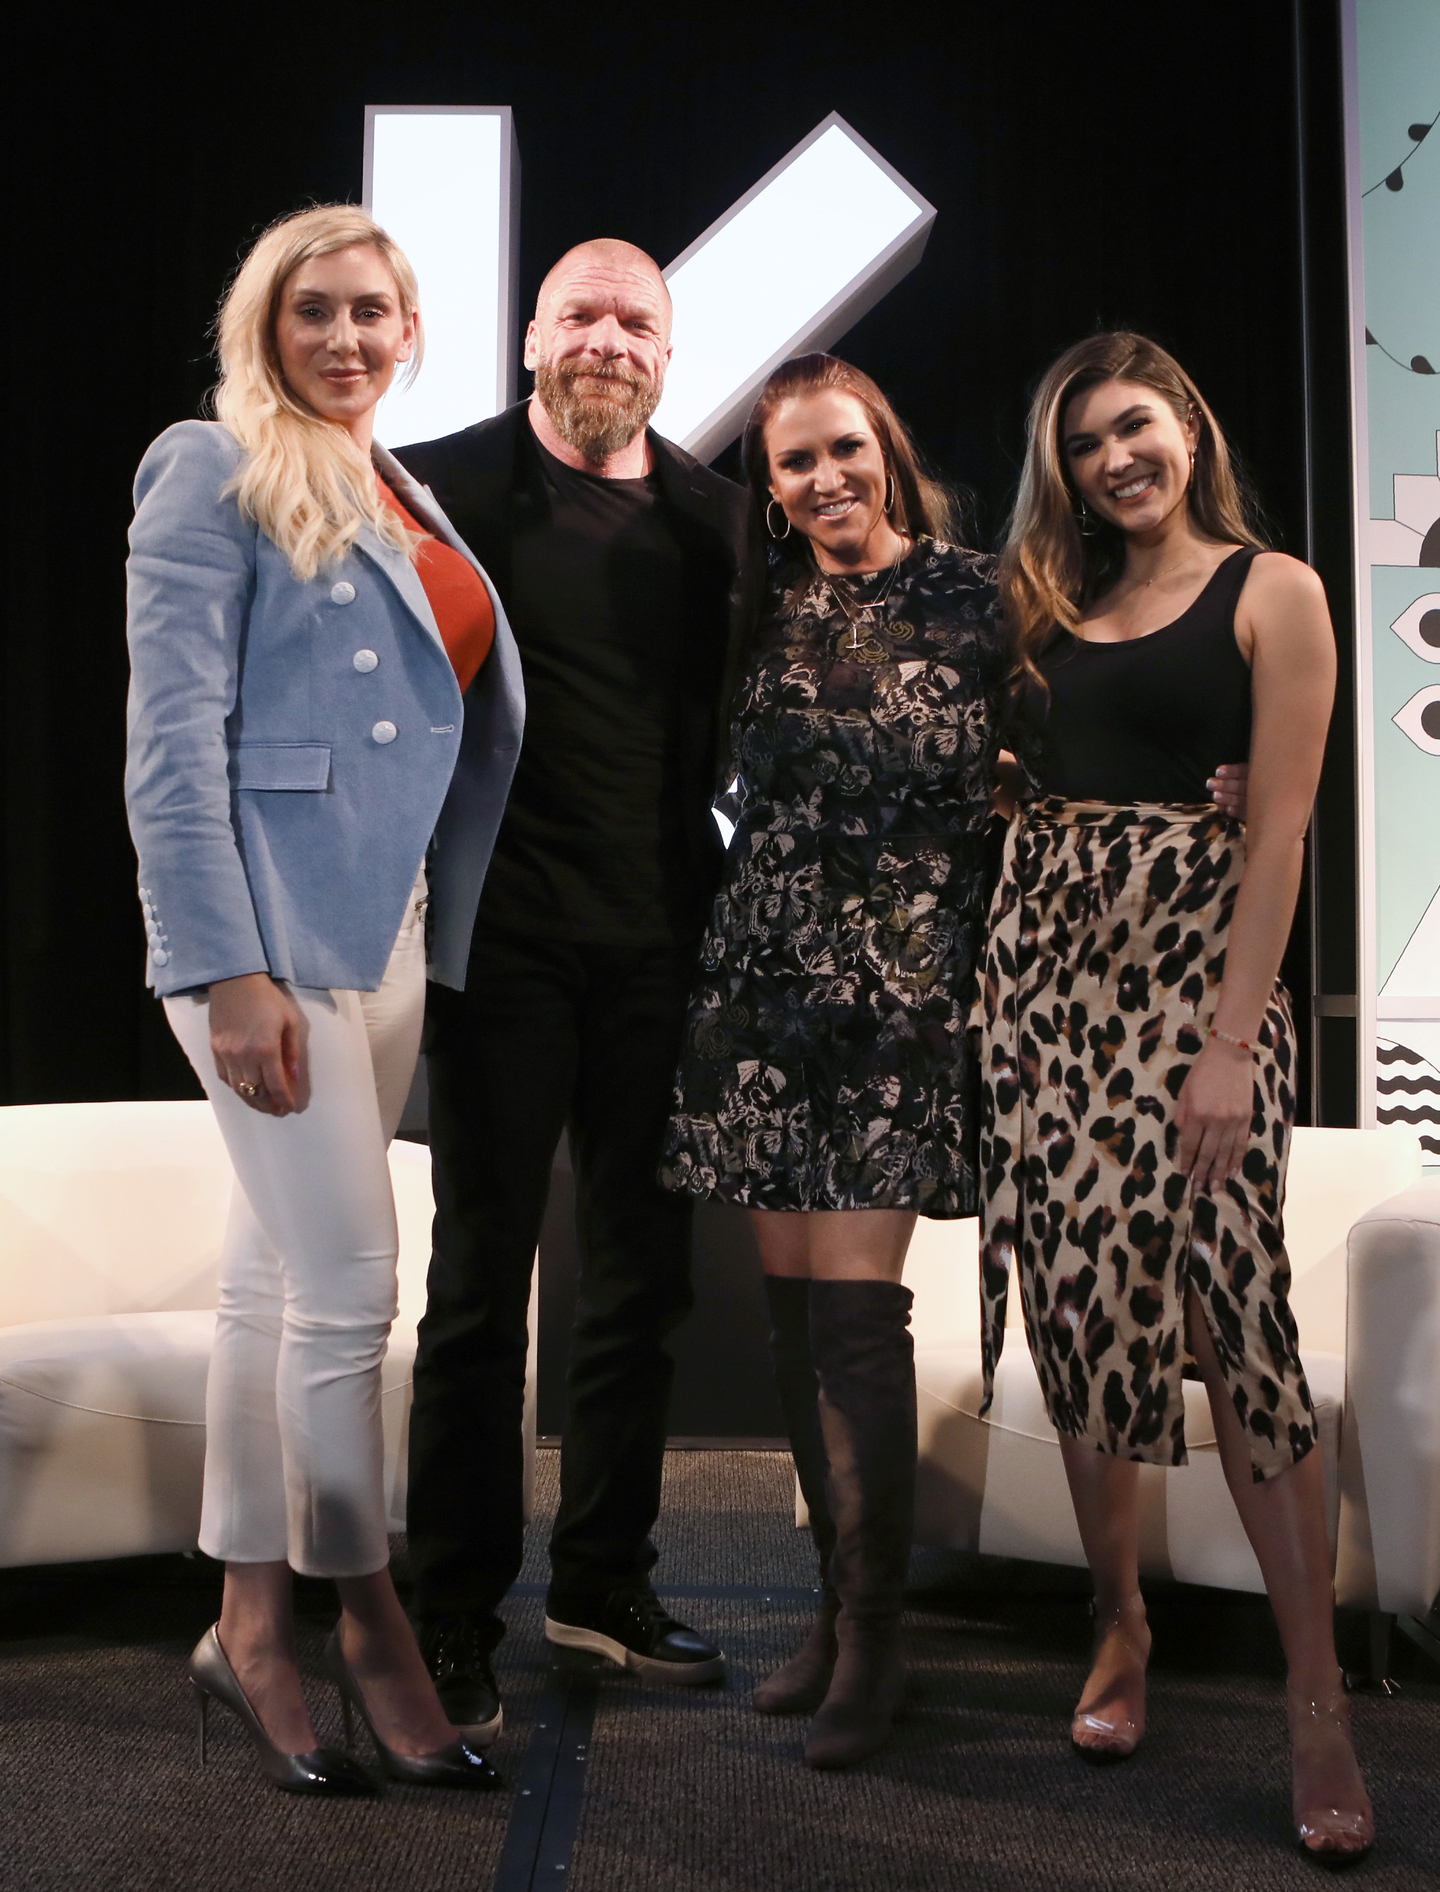 (L-R) Charlotte Flair, Paul Michael Levesque aka 'Triple H', Stephanie McMahon, and Cathy Kelley pose onstage at Featured Session: The Women's Evolution in WWE and Beyond. Photo by Samantha Burkardt/Getty Images for SXSW